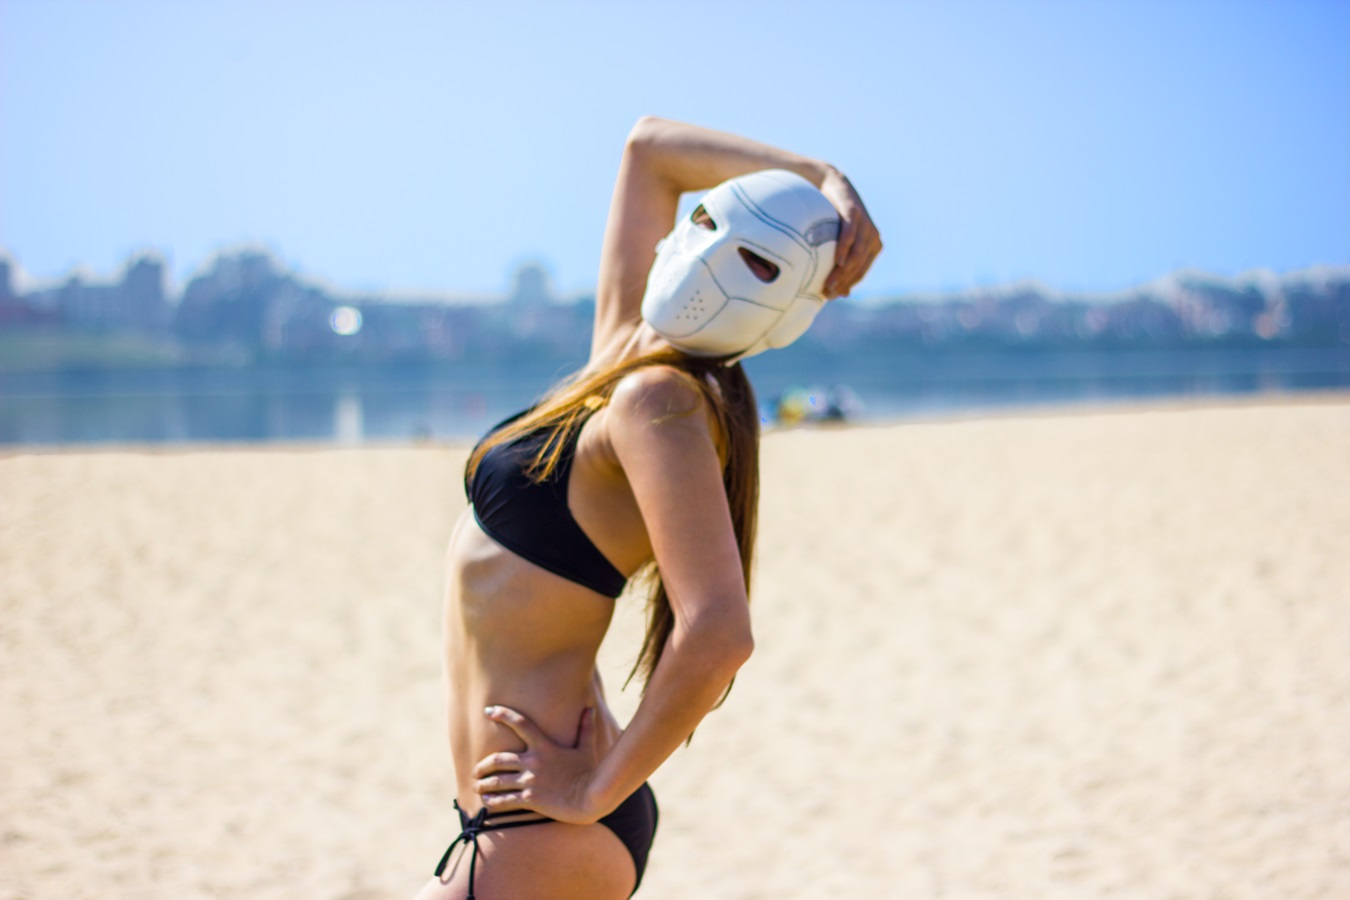 Girl in bikini posing with a deadshot mask at the beach